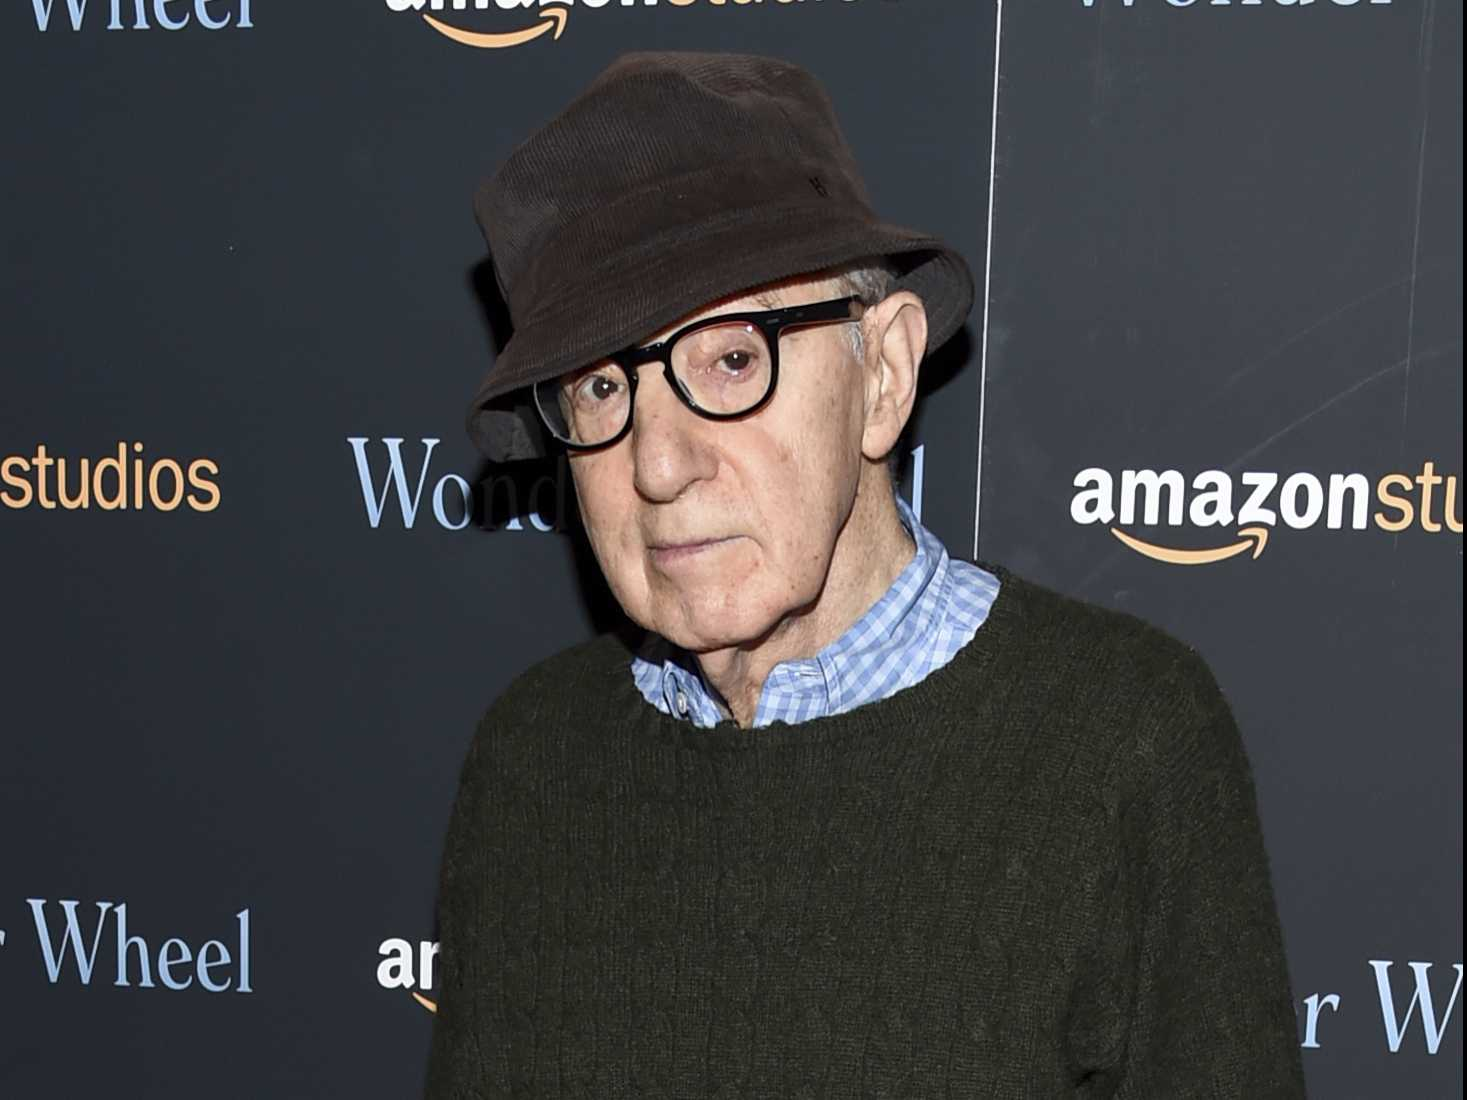 Amazon: Woody Allen's #MeToo Comments Wrecked Movie Deal